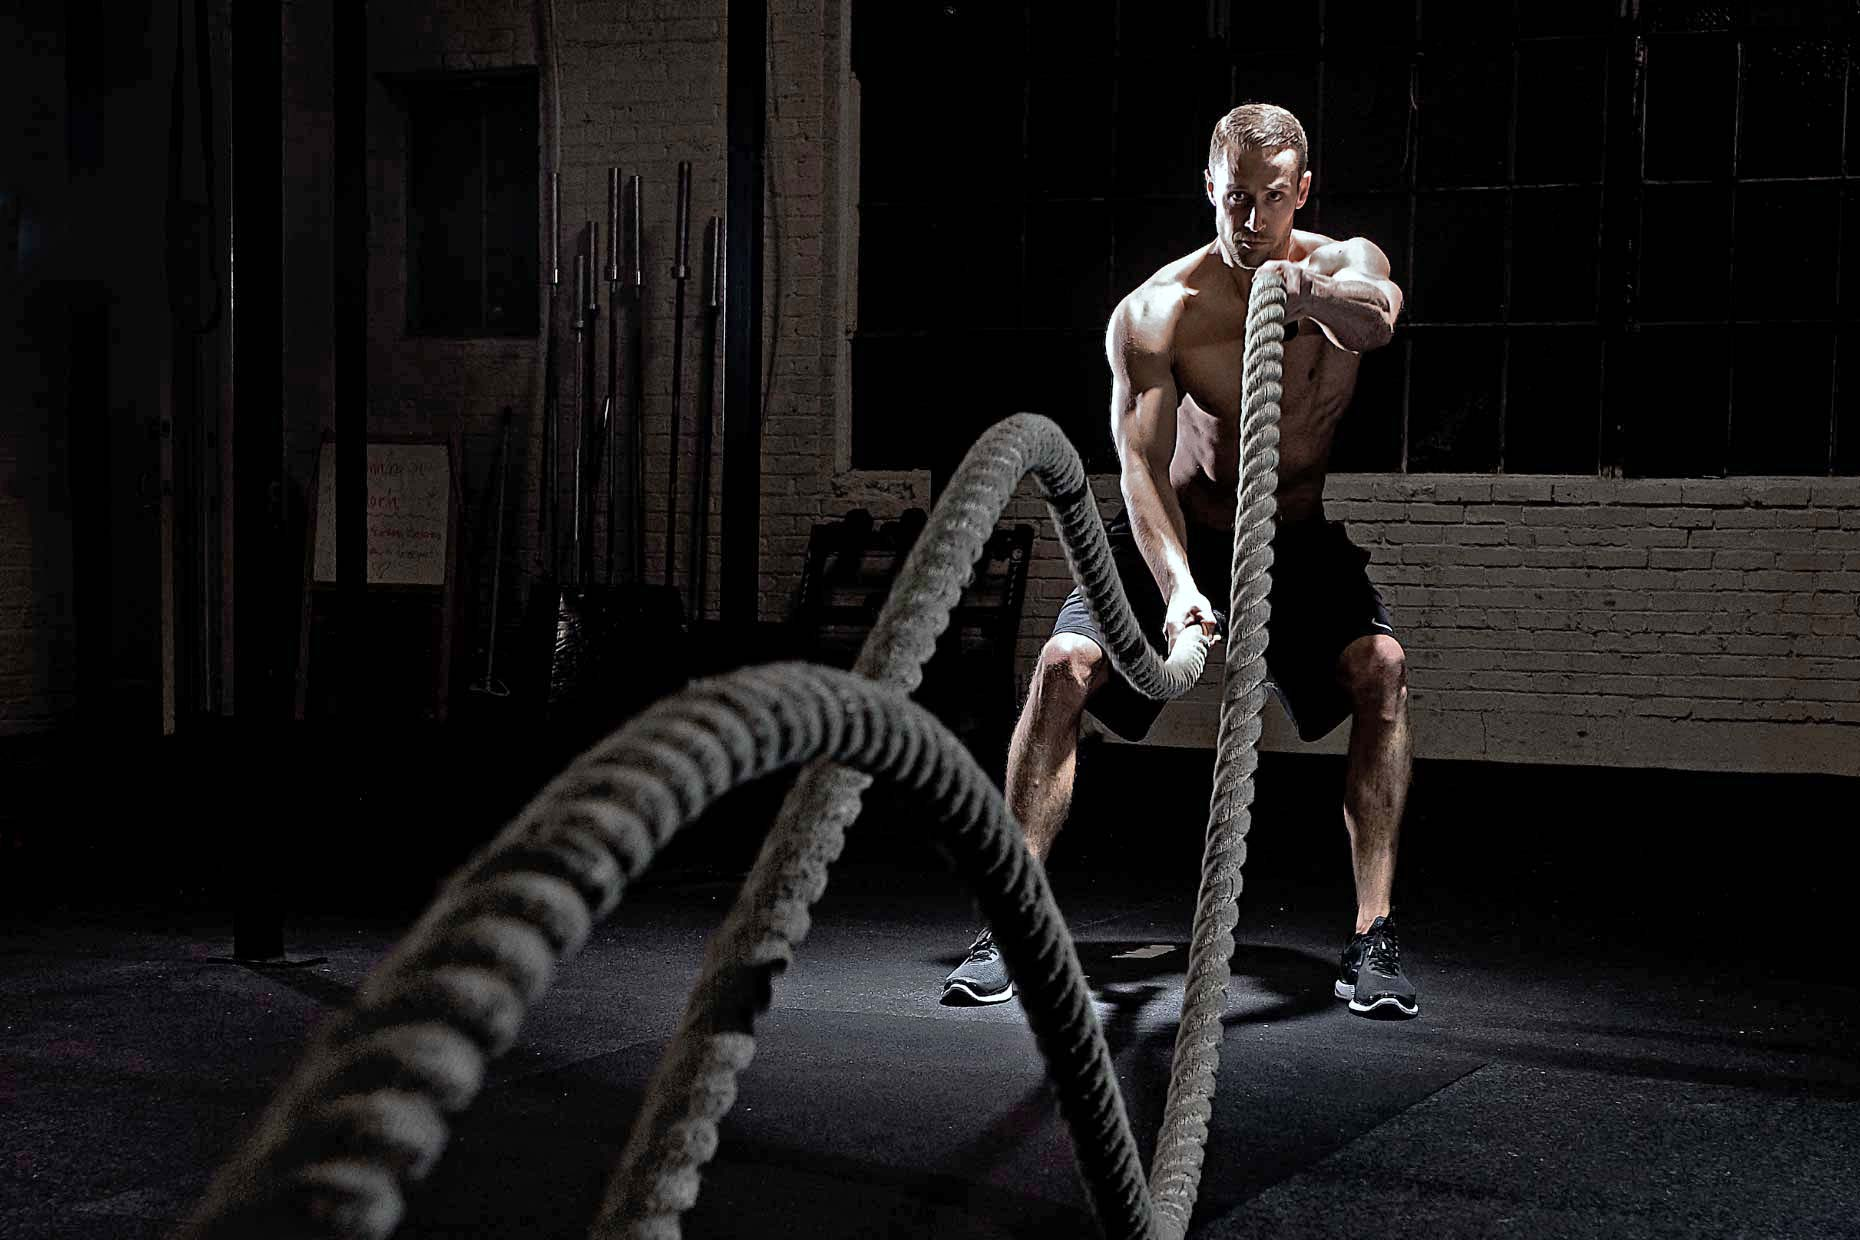 battle rope exercises for abs